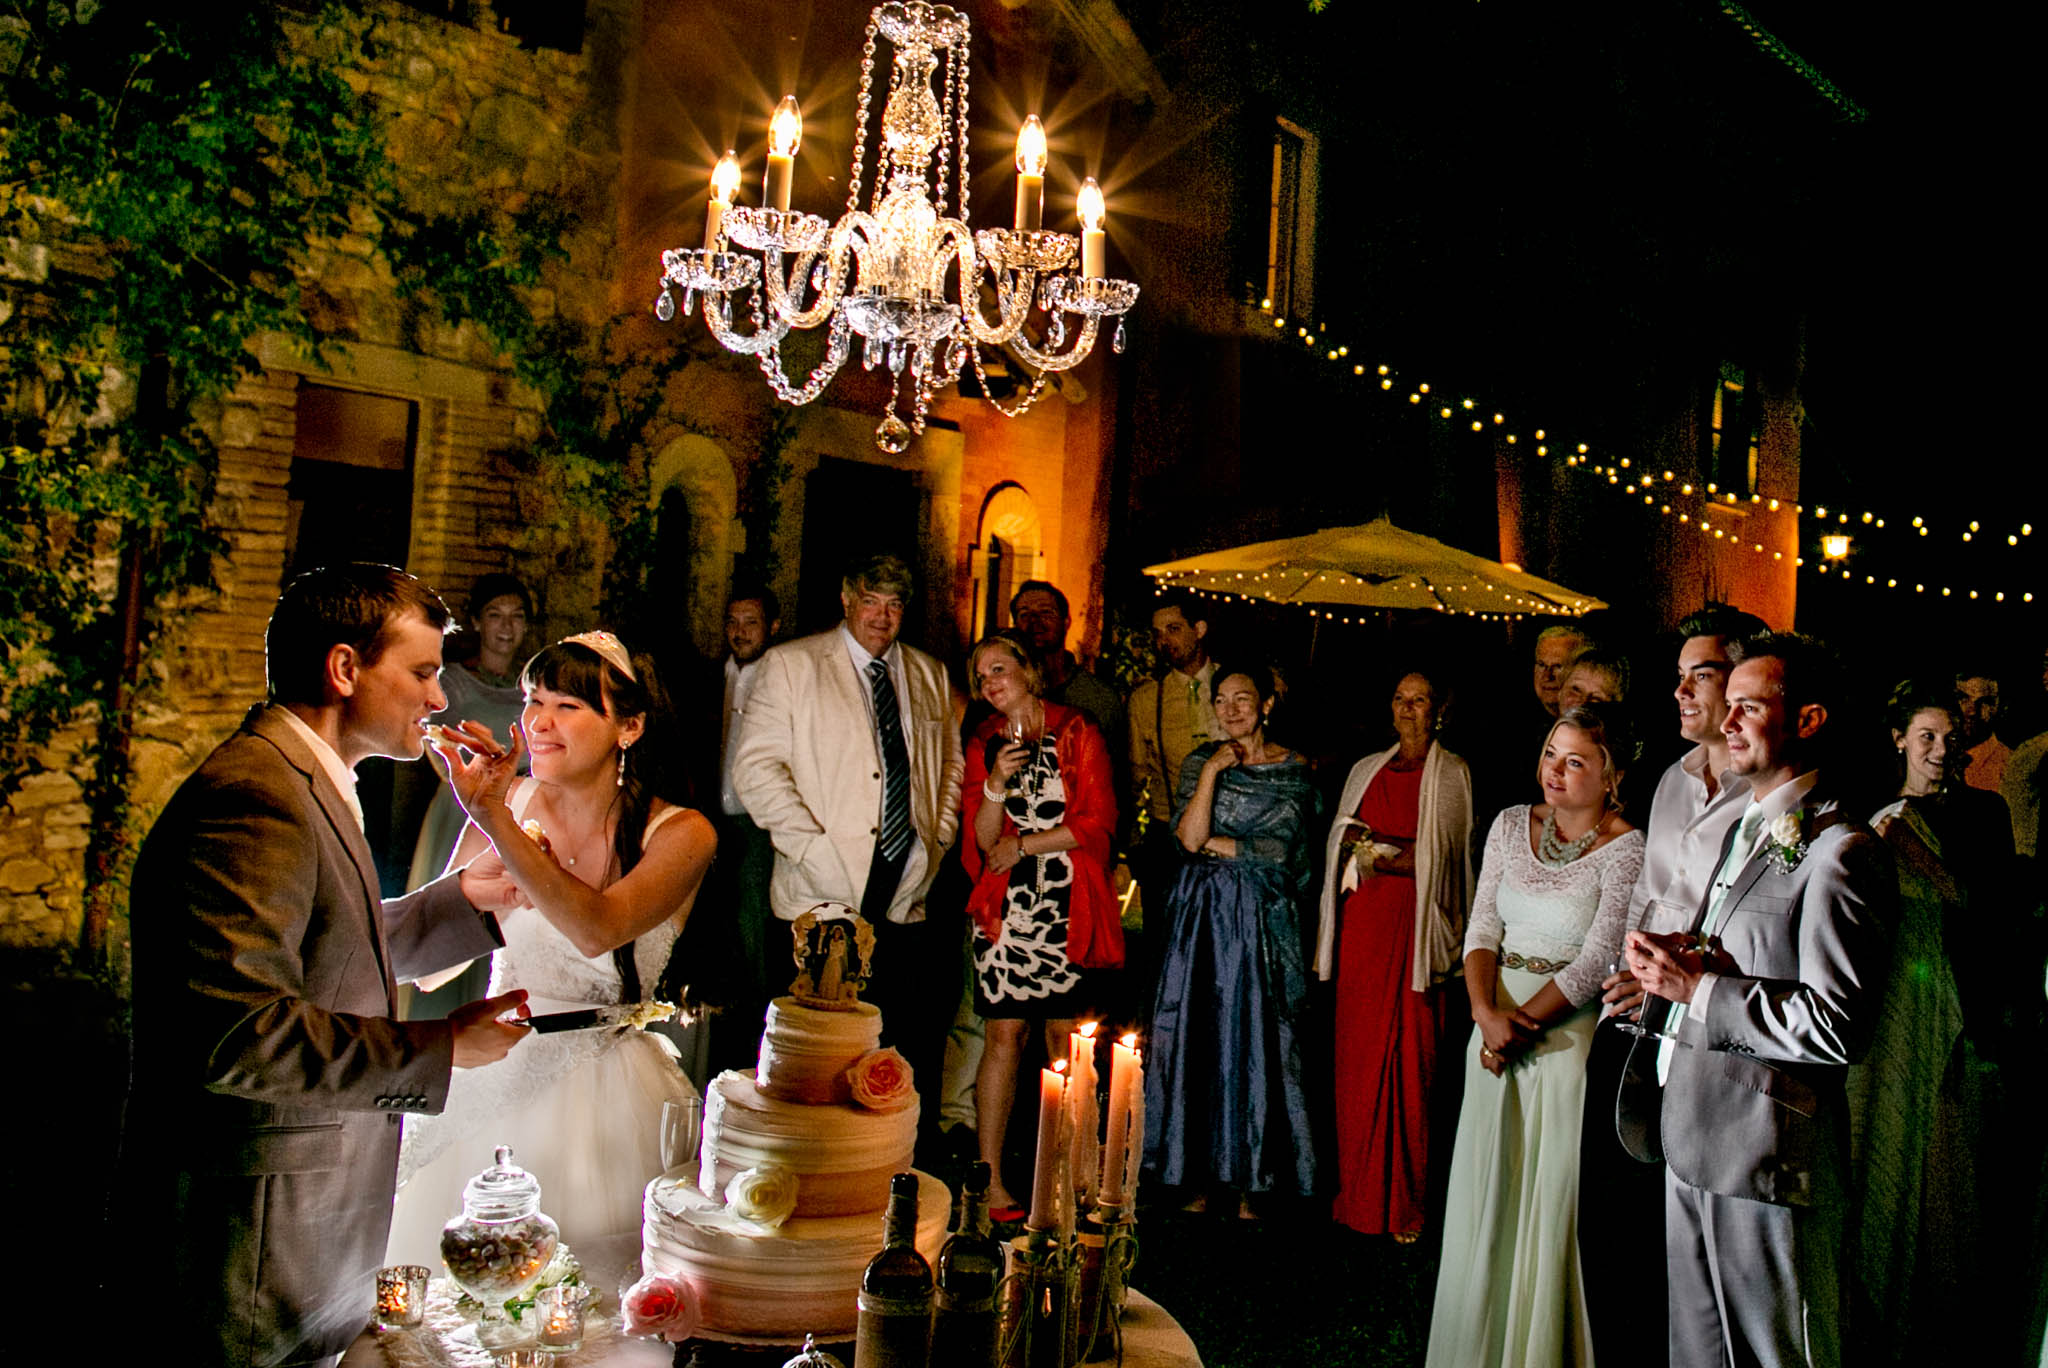 Bride feeding groom cake at reception under chandelier at Villa Tre Grazie in Todi Italy in Umbria